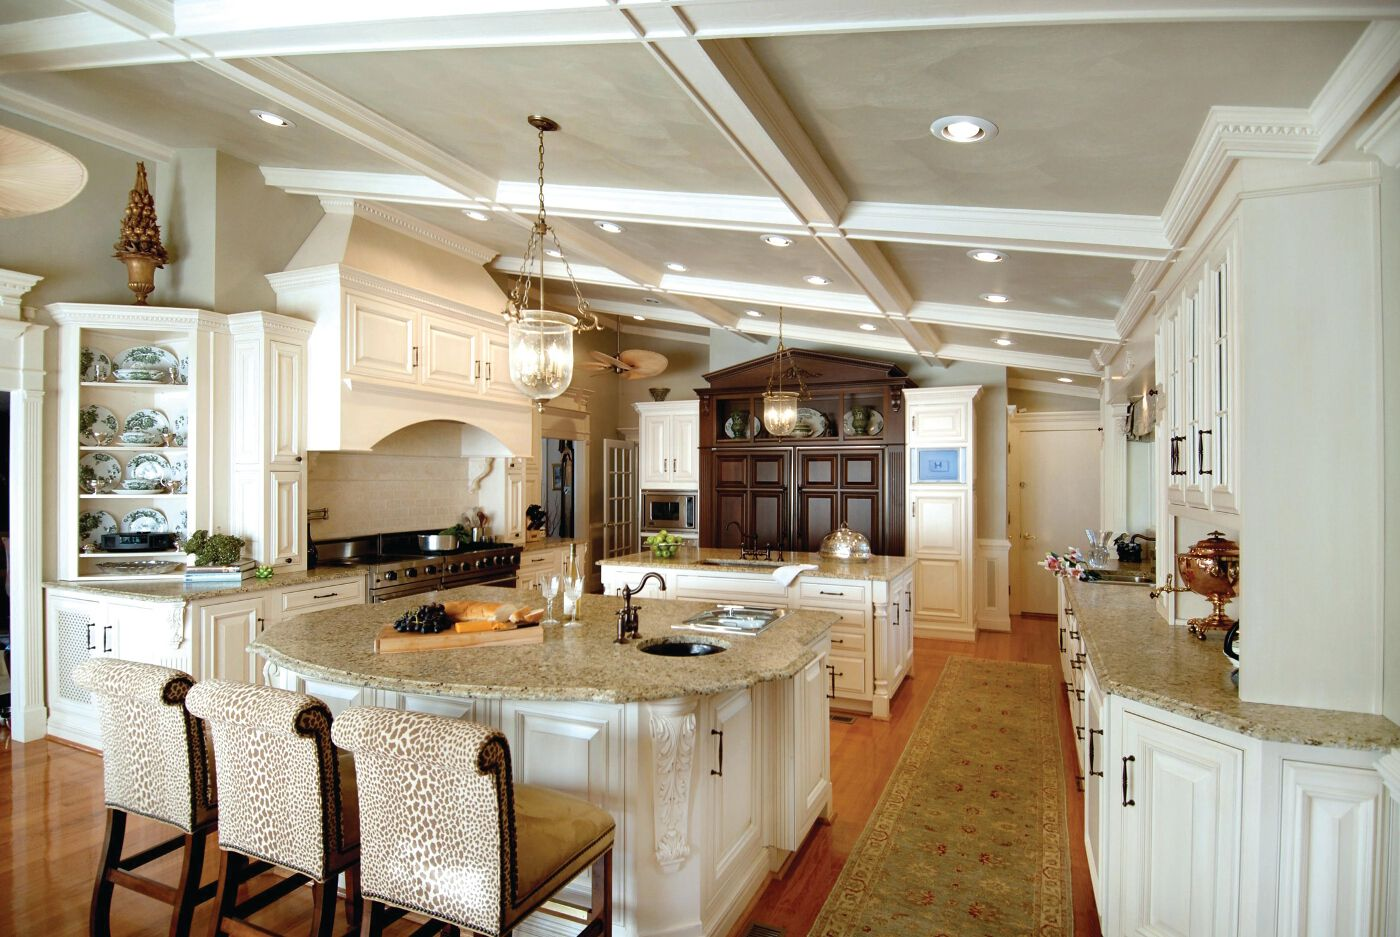 Custom Wood Products Cwp Cabinetry Kitchen Gallery Ceiling Custom Wood Kitchen Gallery Custom Cabinetry